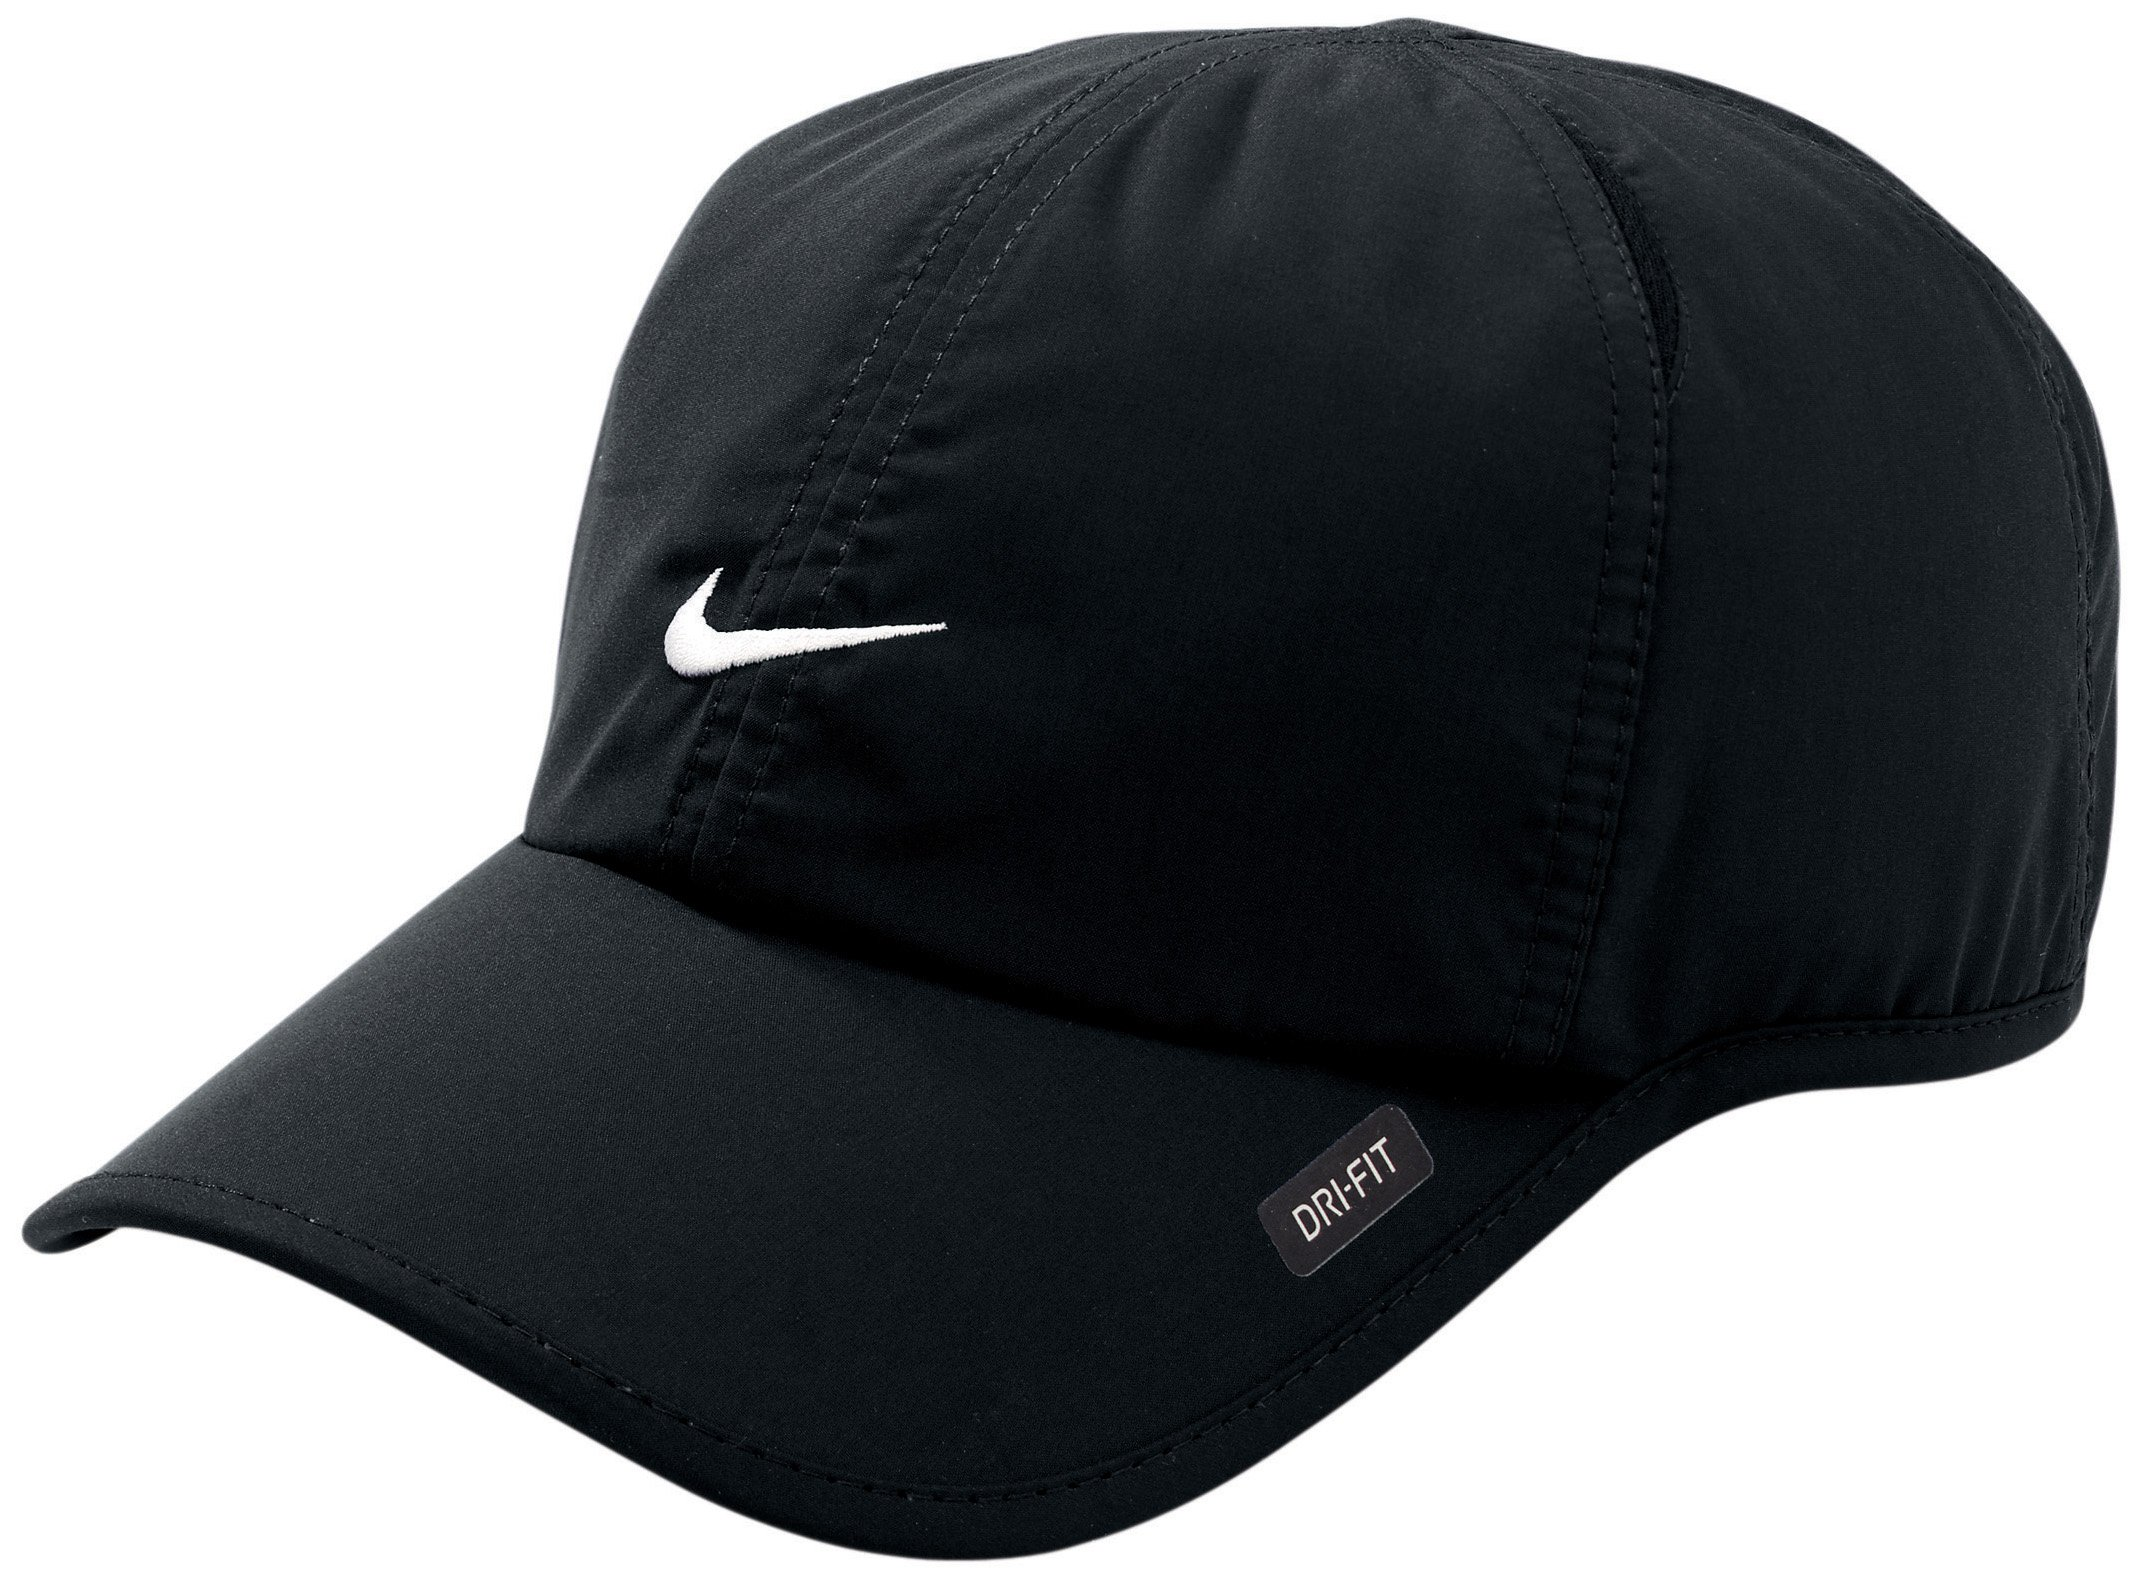 Galleon Men S Nike Feather Light Cap Black